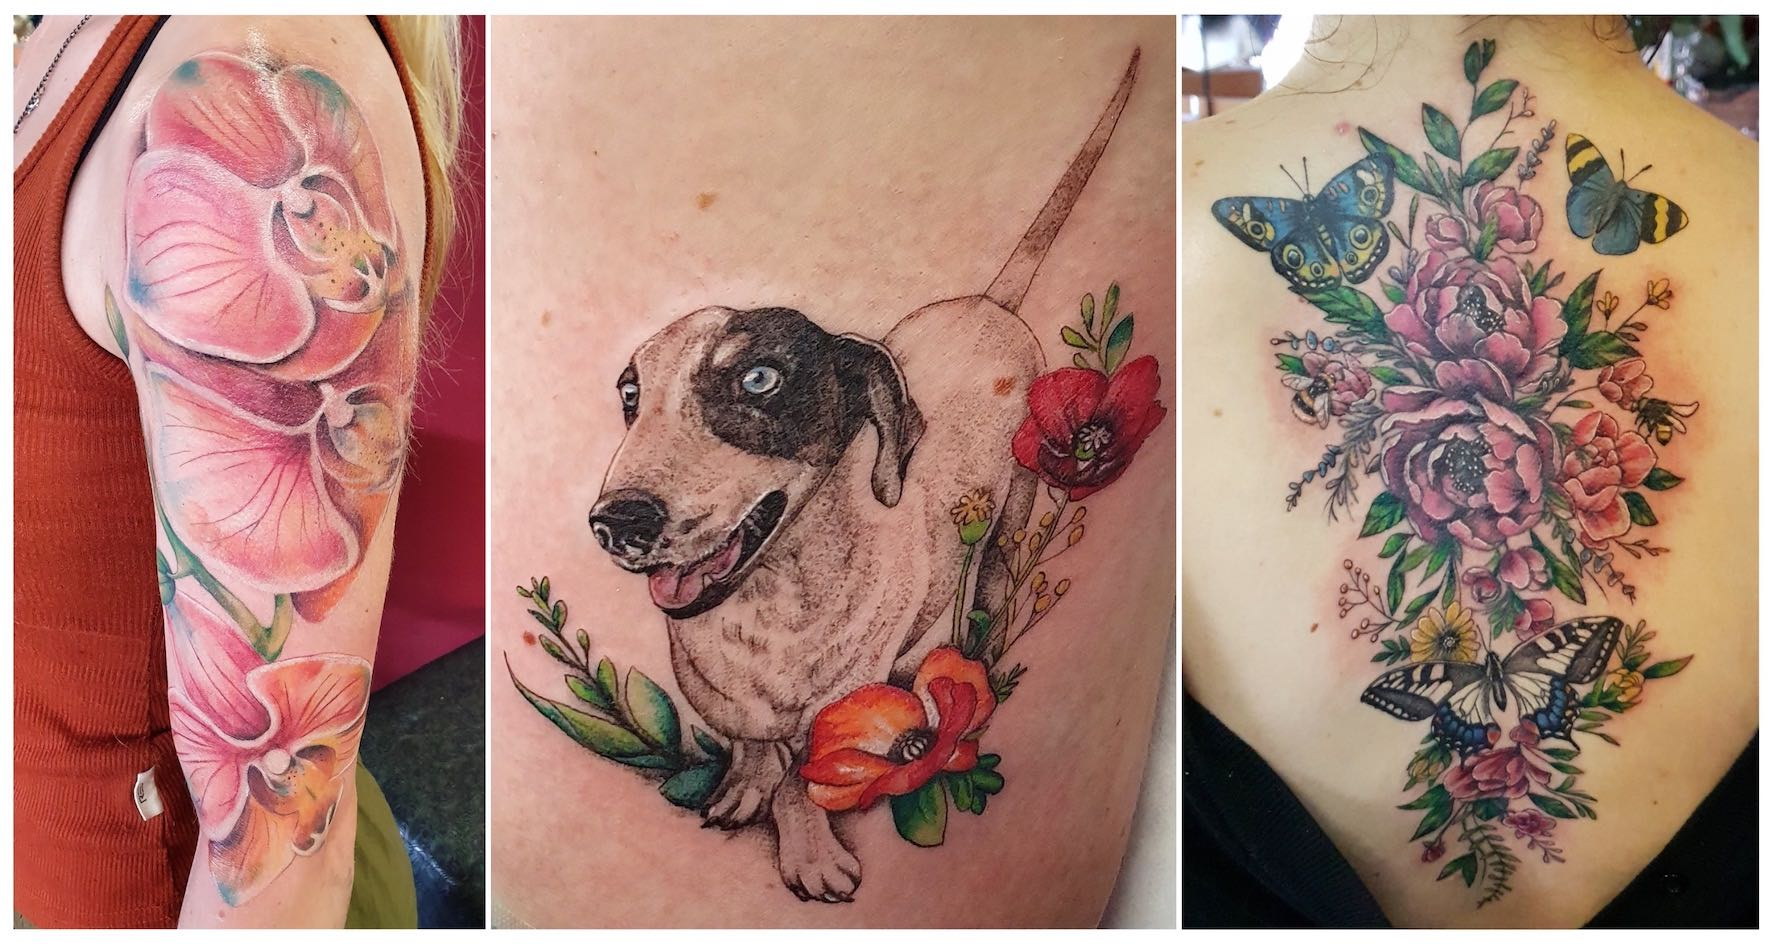 Tattoo work done by Ting Thorne